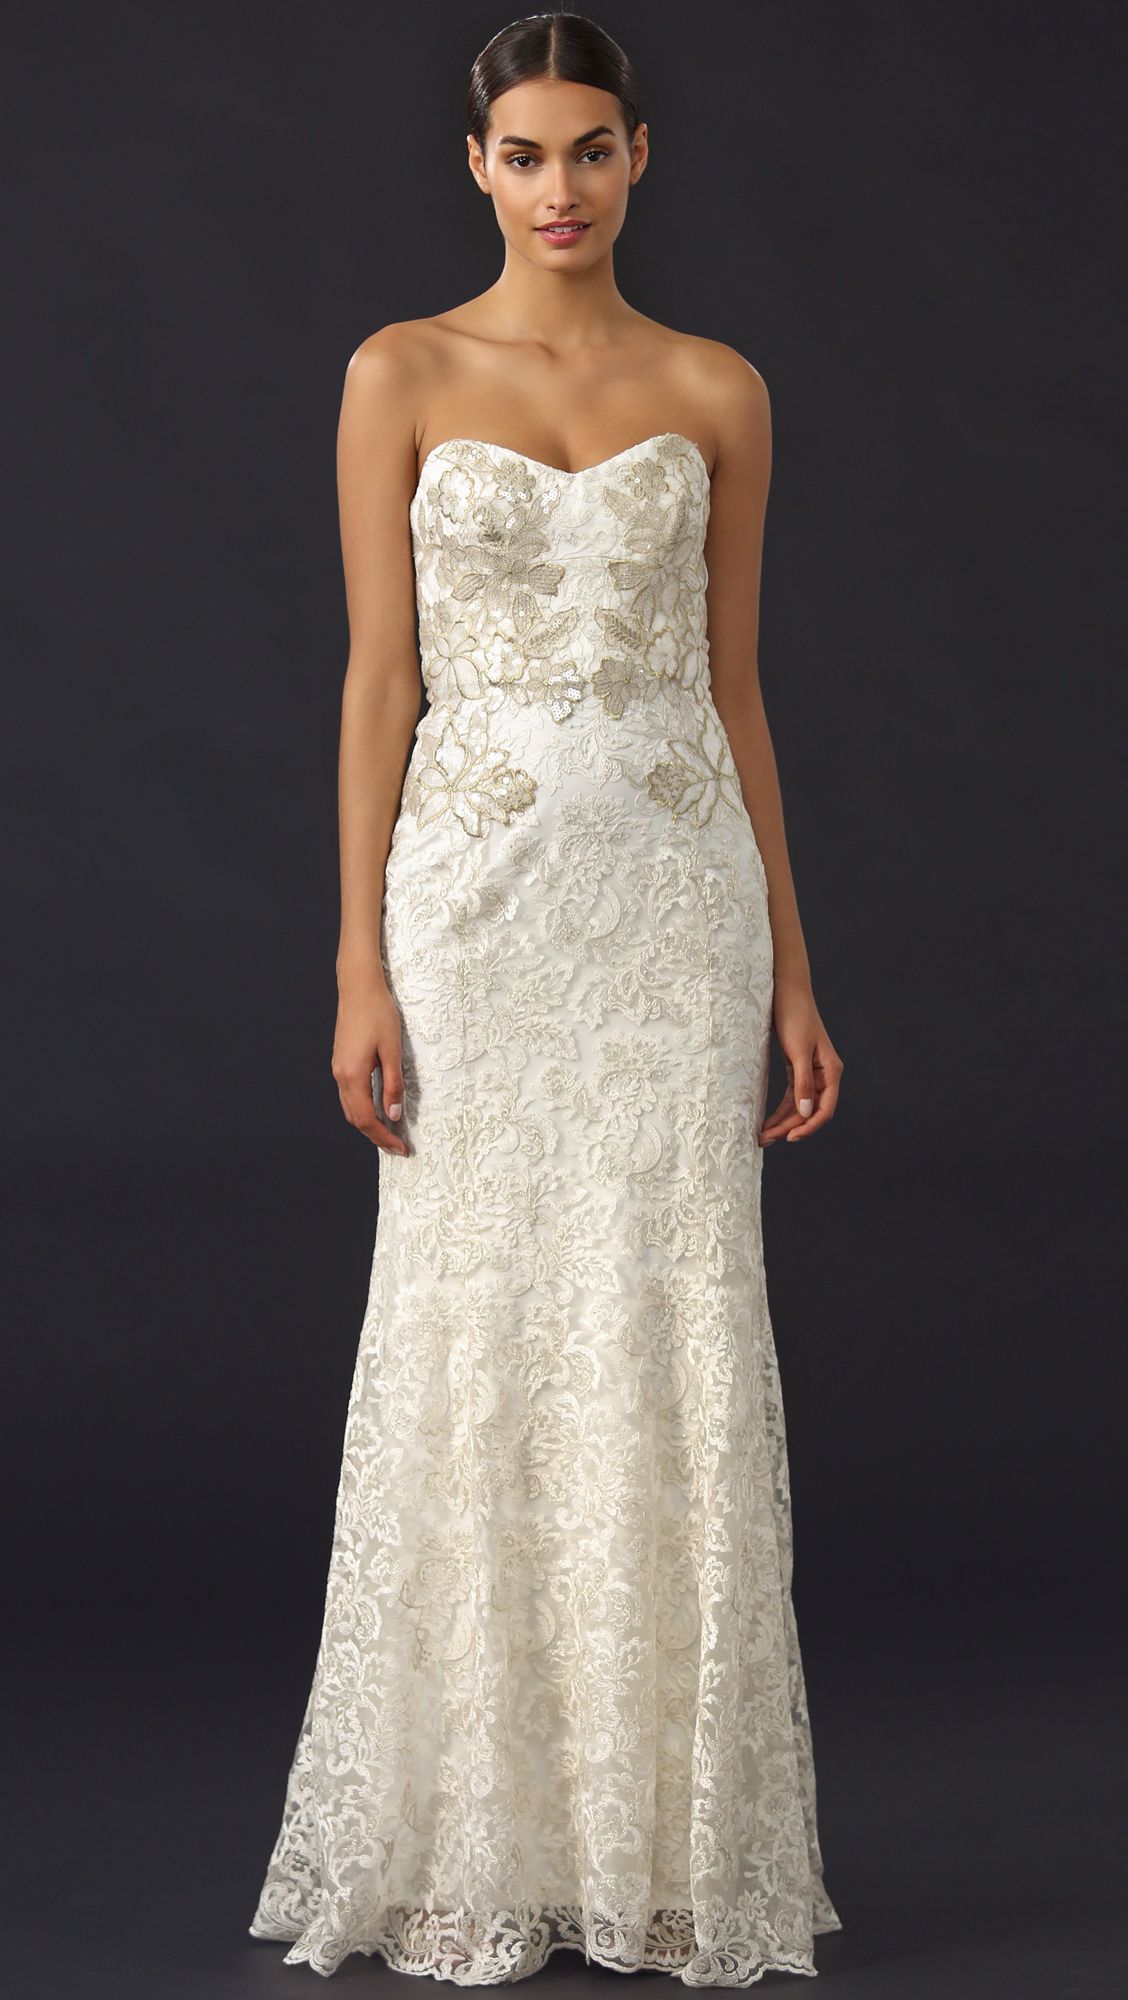 Notte by marchesa Metallic Lace Mermaid Gown Ivory in